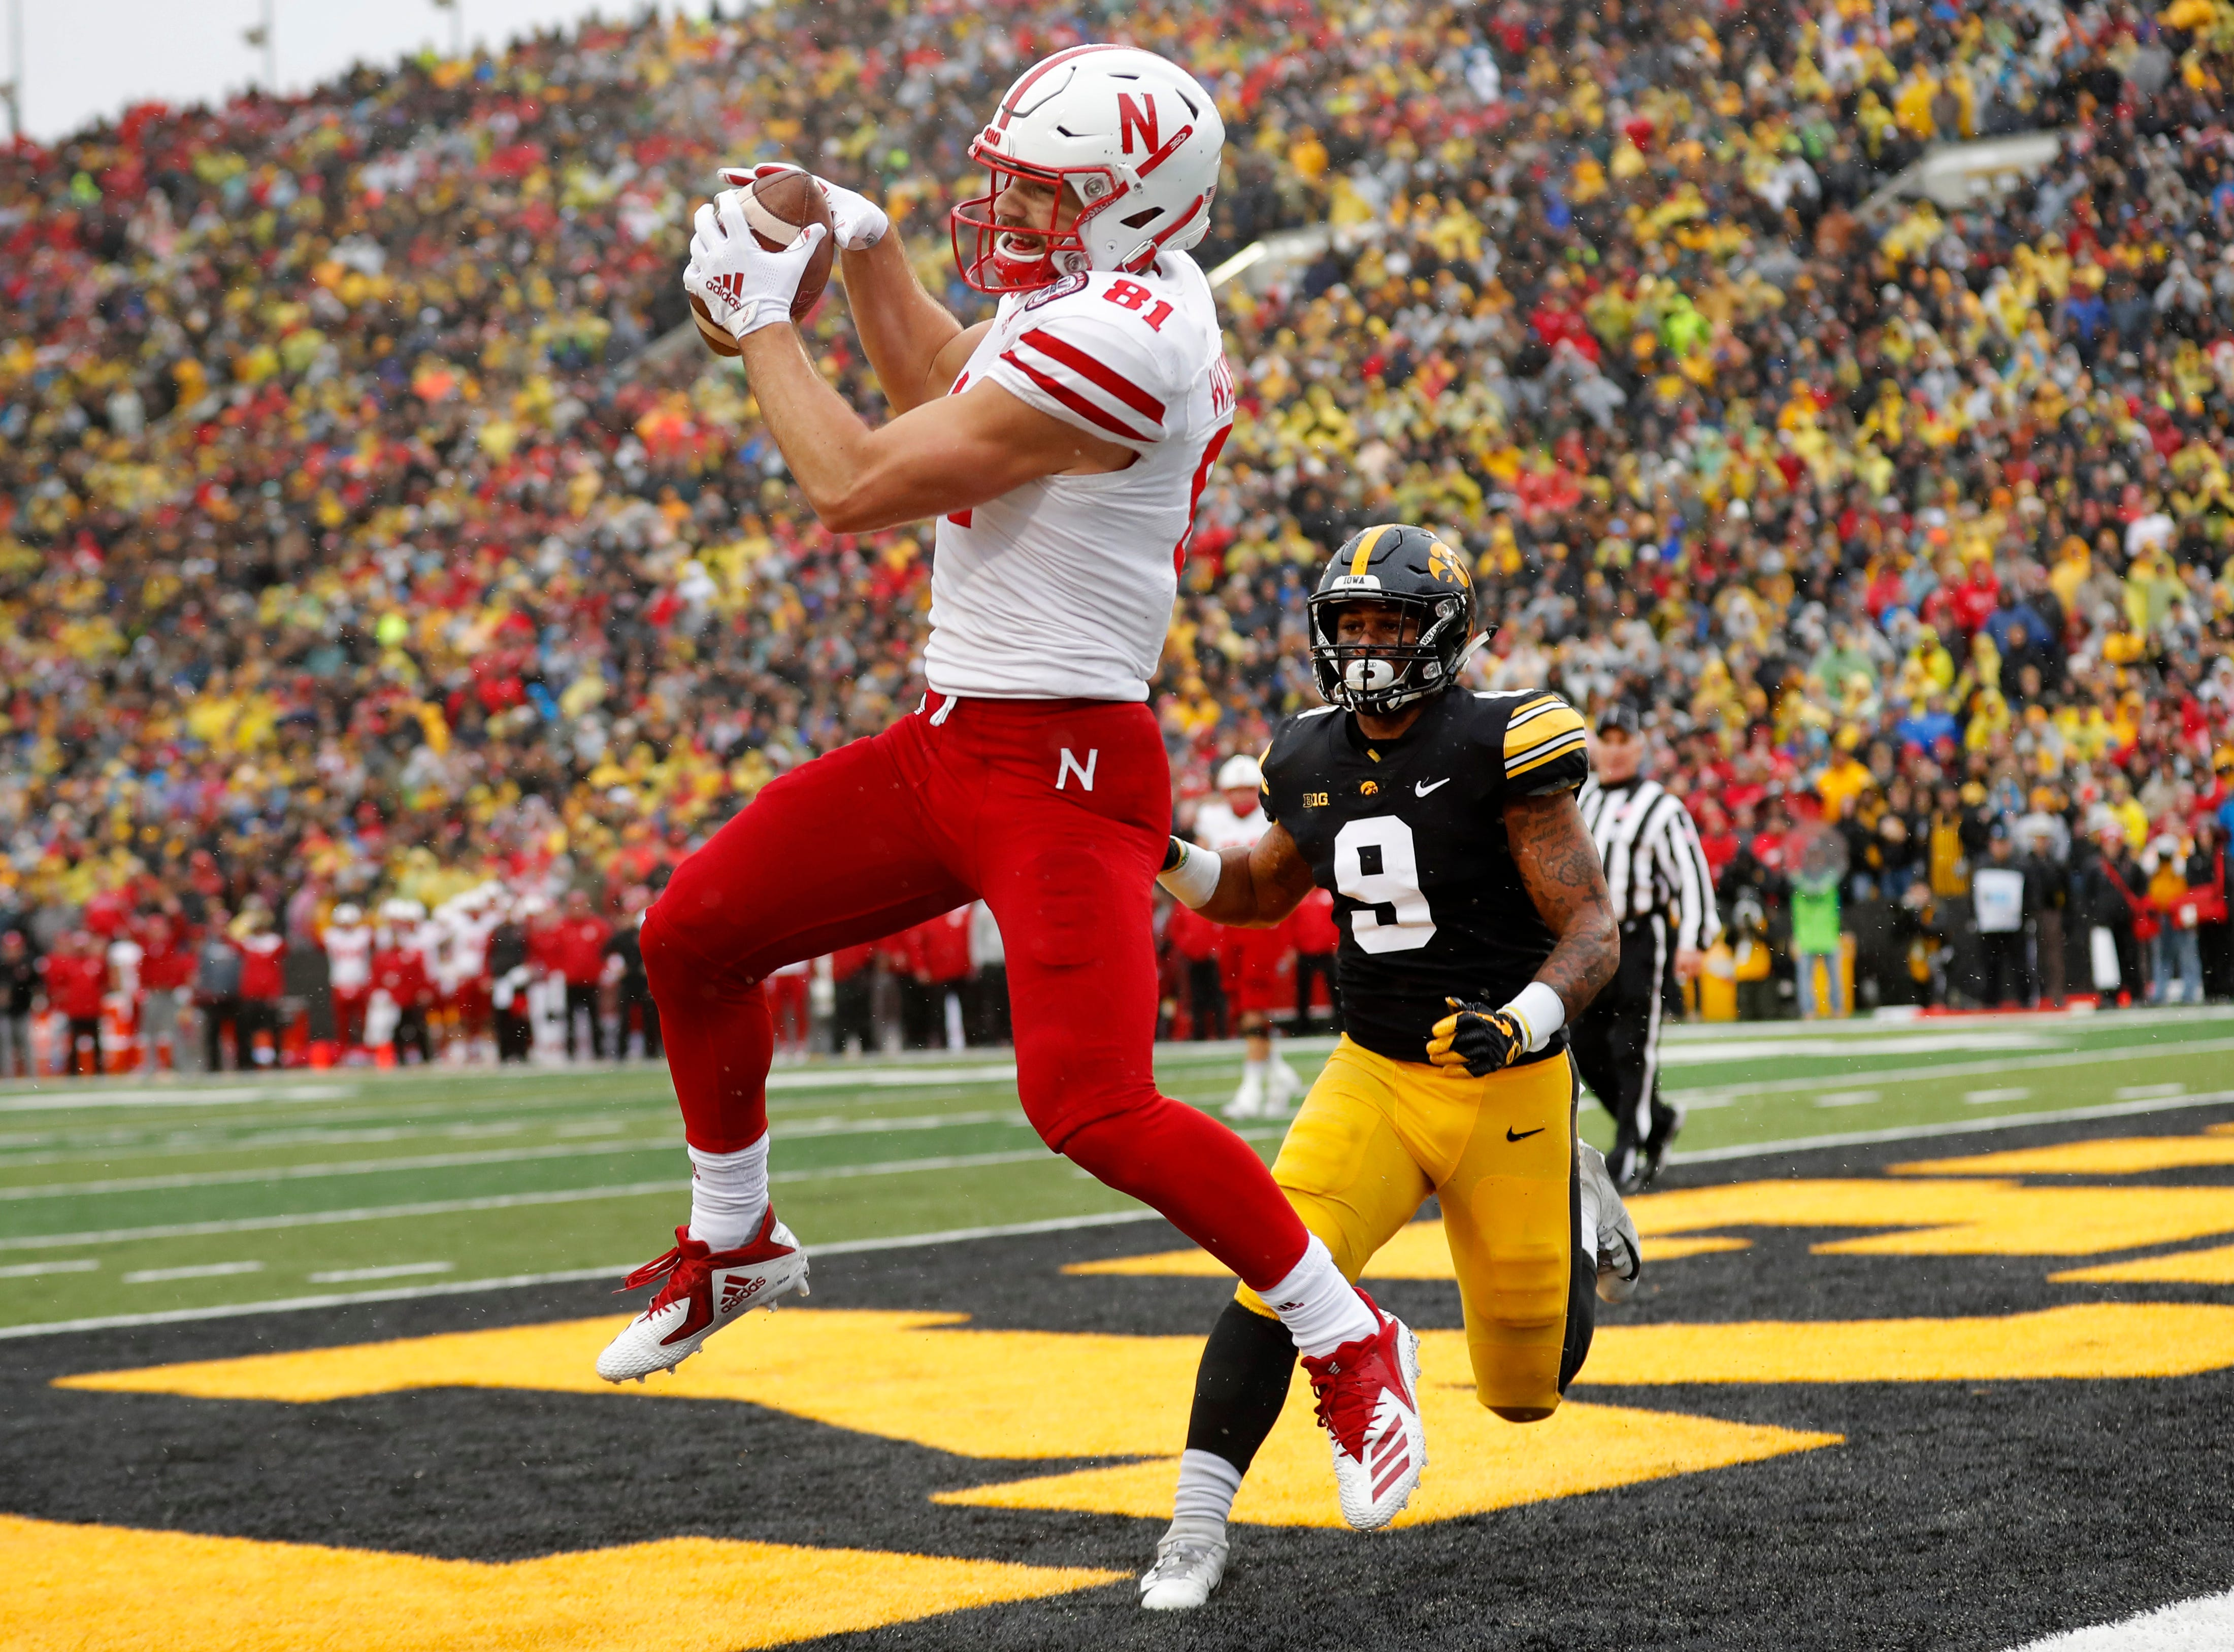 11. Nebraska (4-8, 3-6) – It was a miserable start to coach Scott Frost's tenure with the Cornhuskers as they lost their first six games. However, there were signs of life down the stretch as the Huskers' offense was rolling and they won four of their final six before falling at Iowa. While the results came up short, hopes are high for the Huskers heading into next season. Last week: 9.